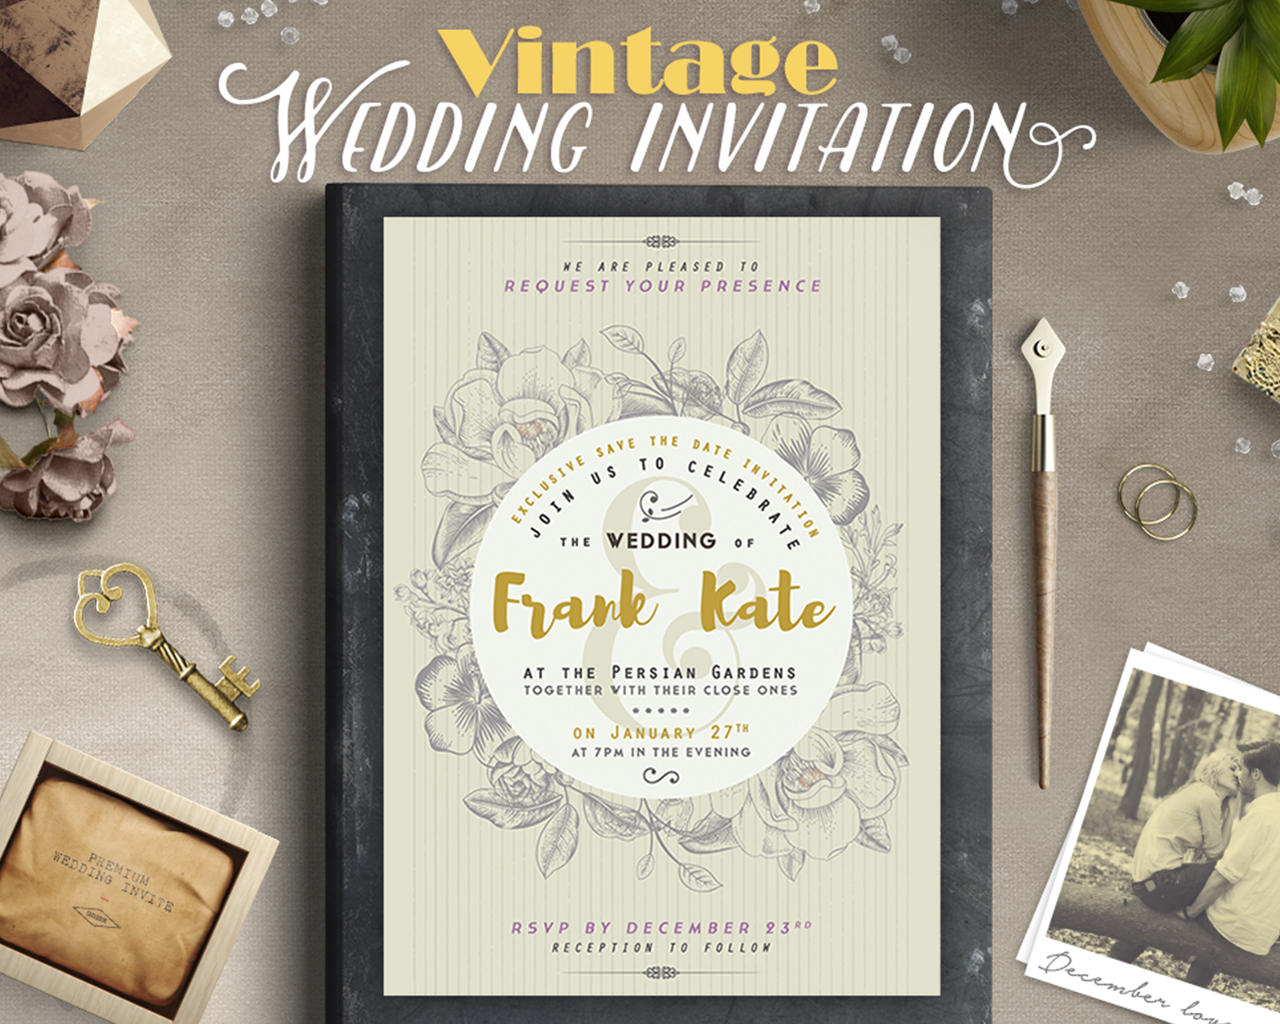 Invitation design services on envato studio retro vintage style wedding invitation design stopboris Choice Image